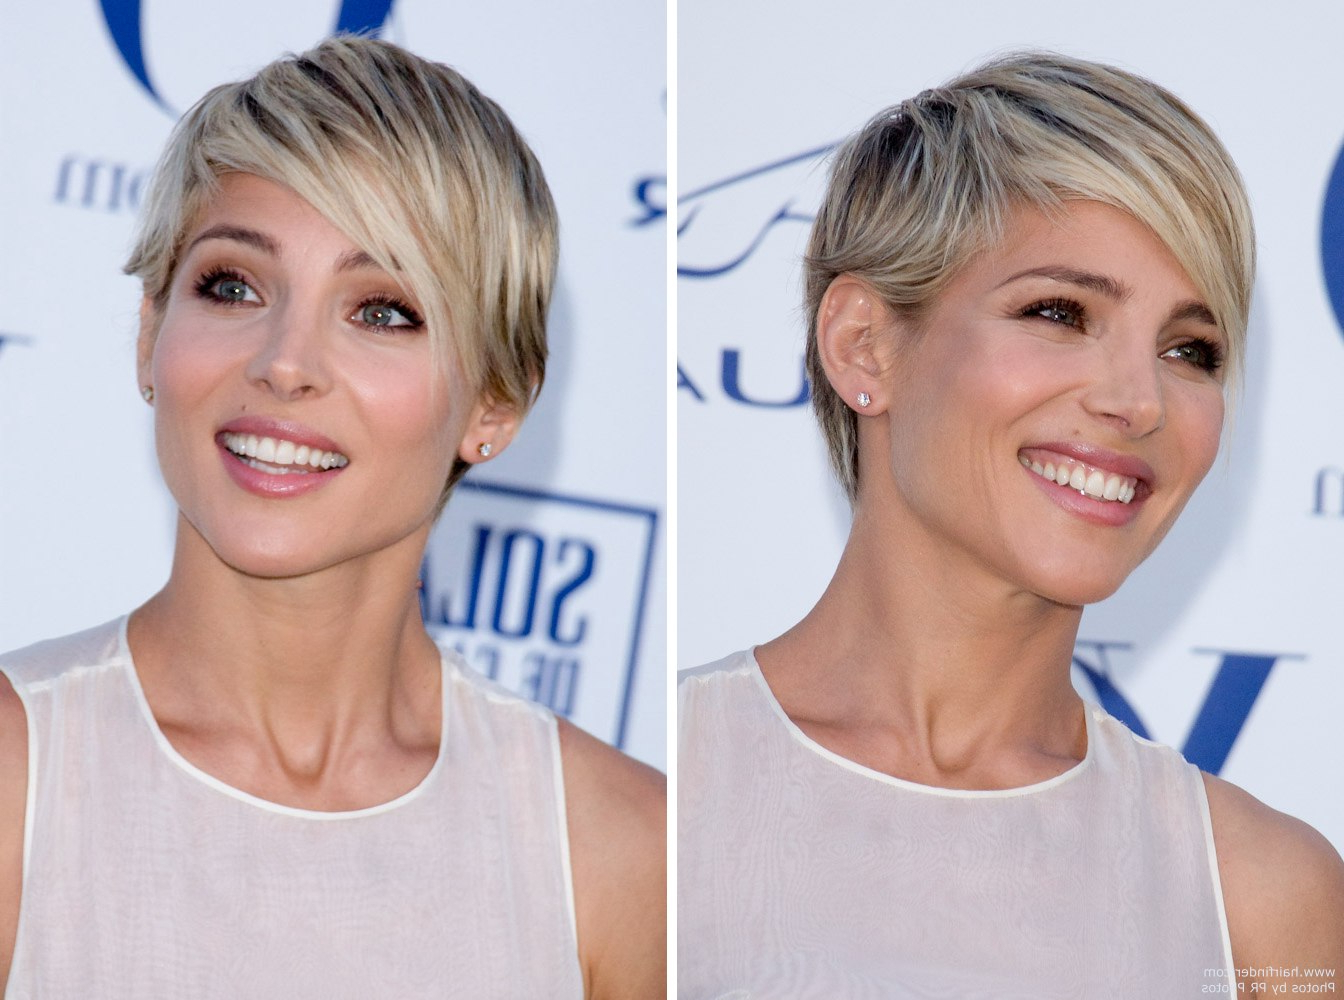 Elsa Pataky | Short Blonde Pixie Haircut With A Tapered Neck And Pertaining To Short Hairstyles Cut Around The Ears (View 20 of 25)